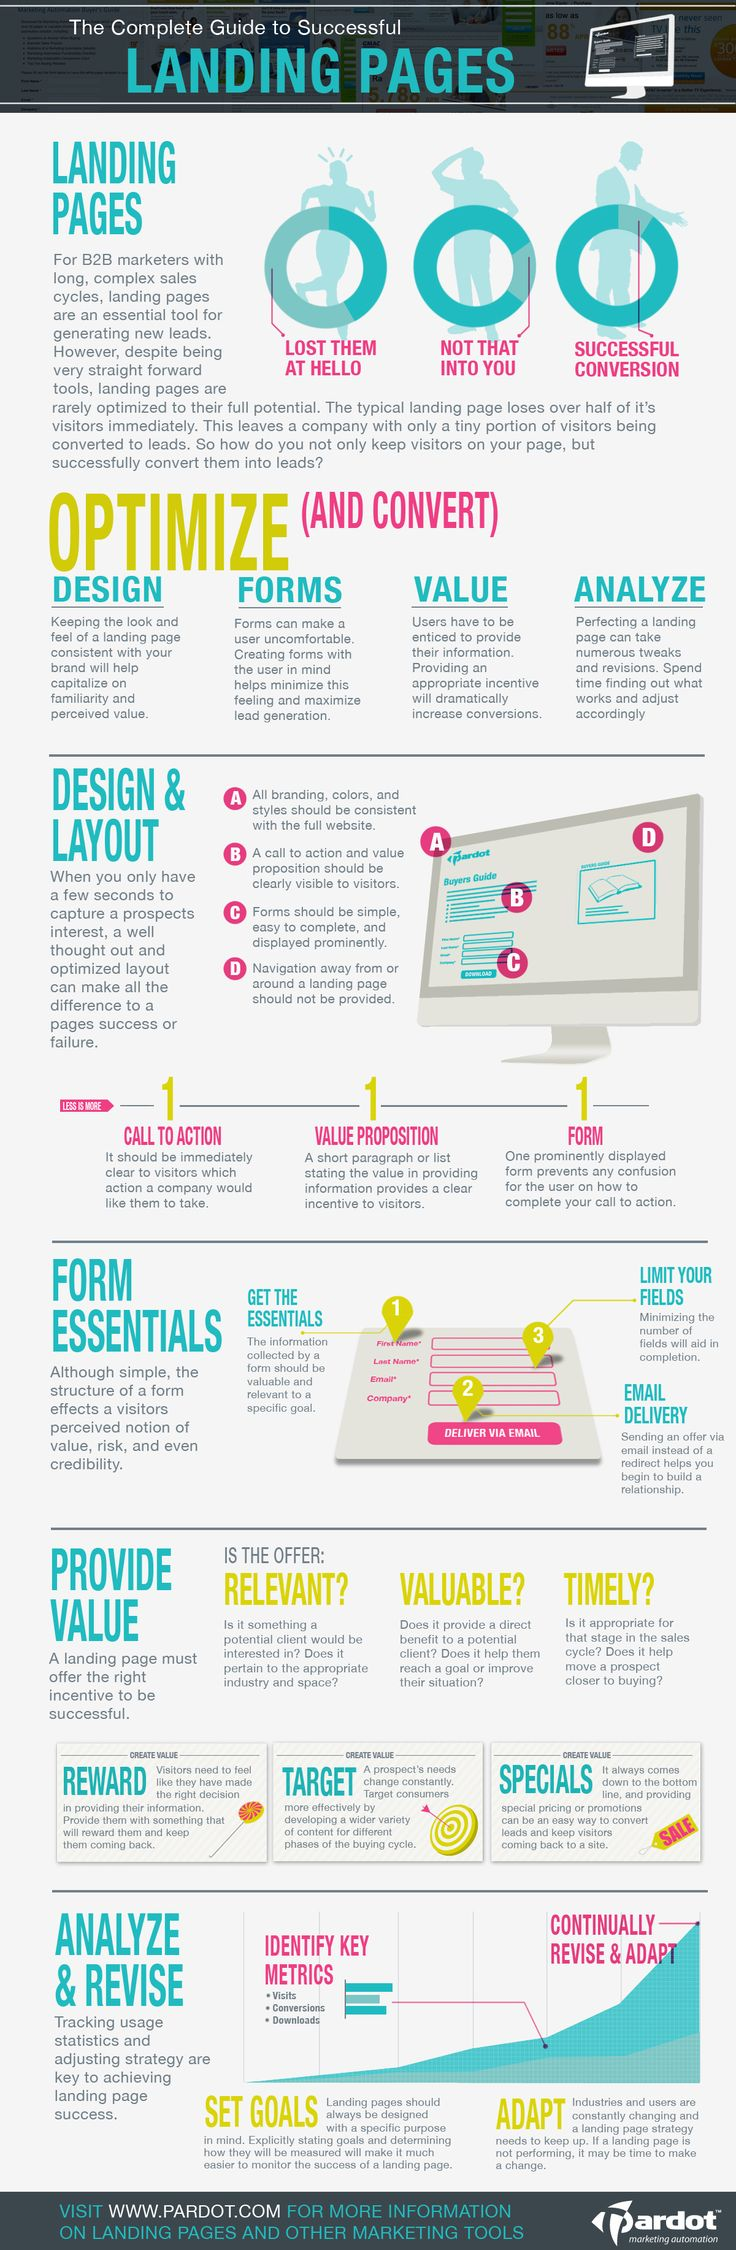 How To Make A Great Landing Page For Your Business Website | Infographic